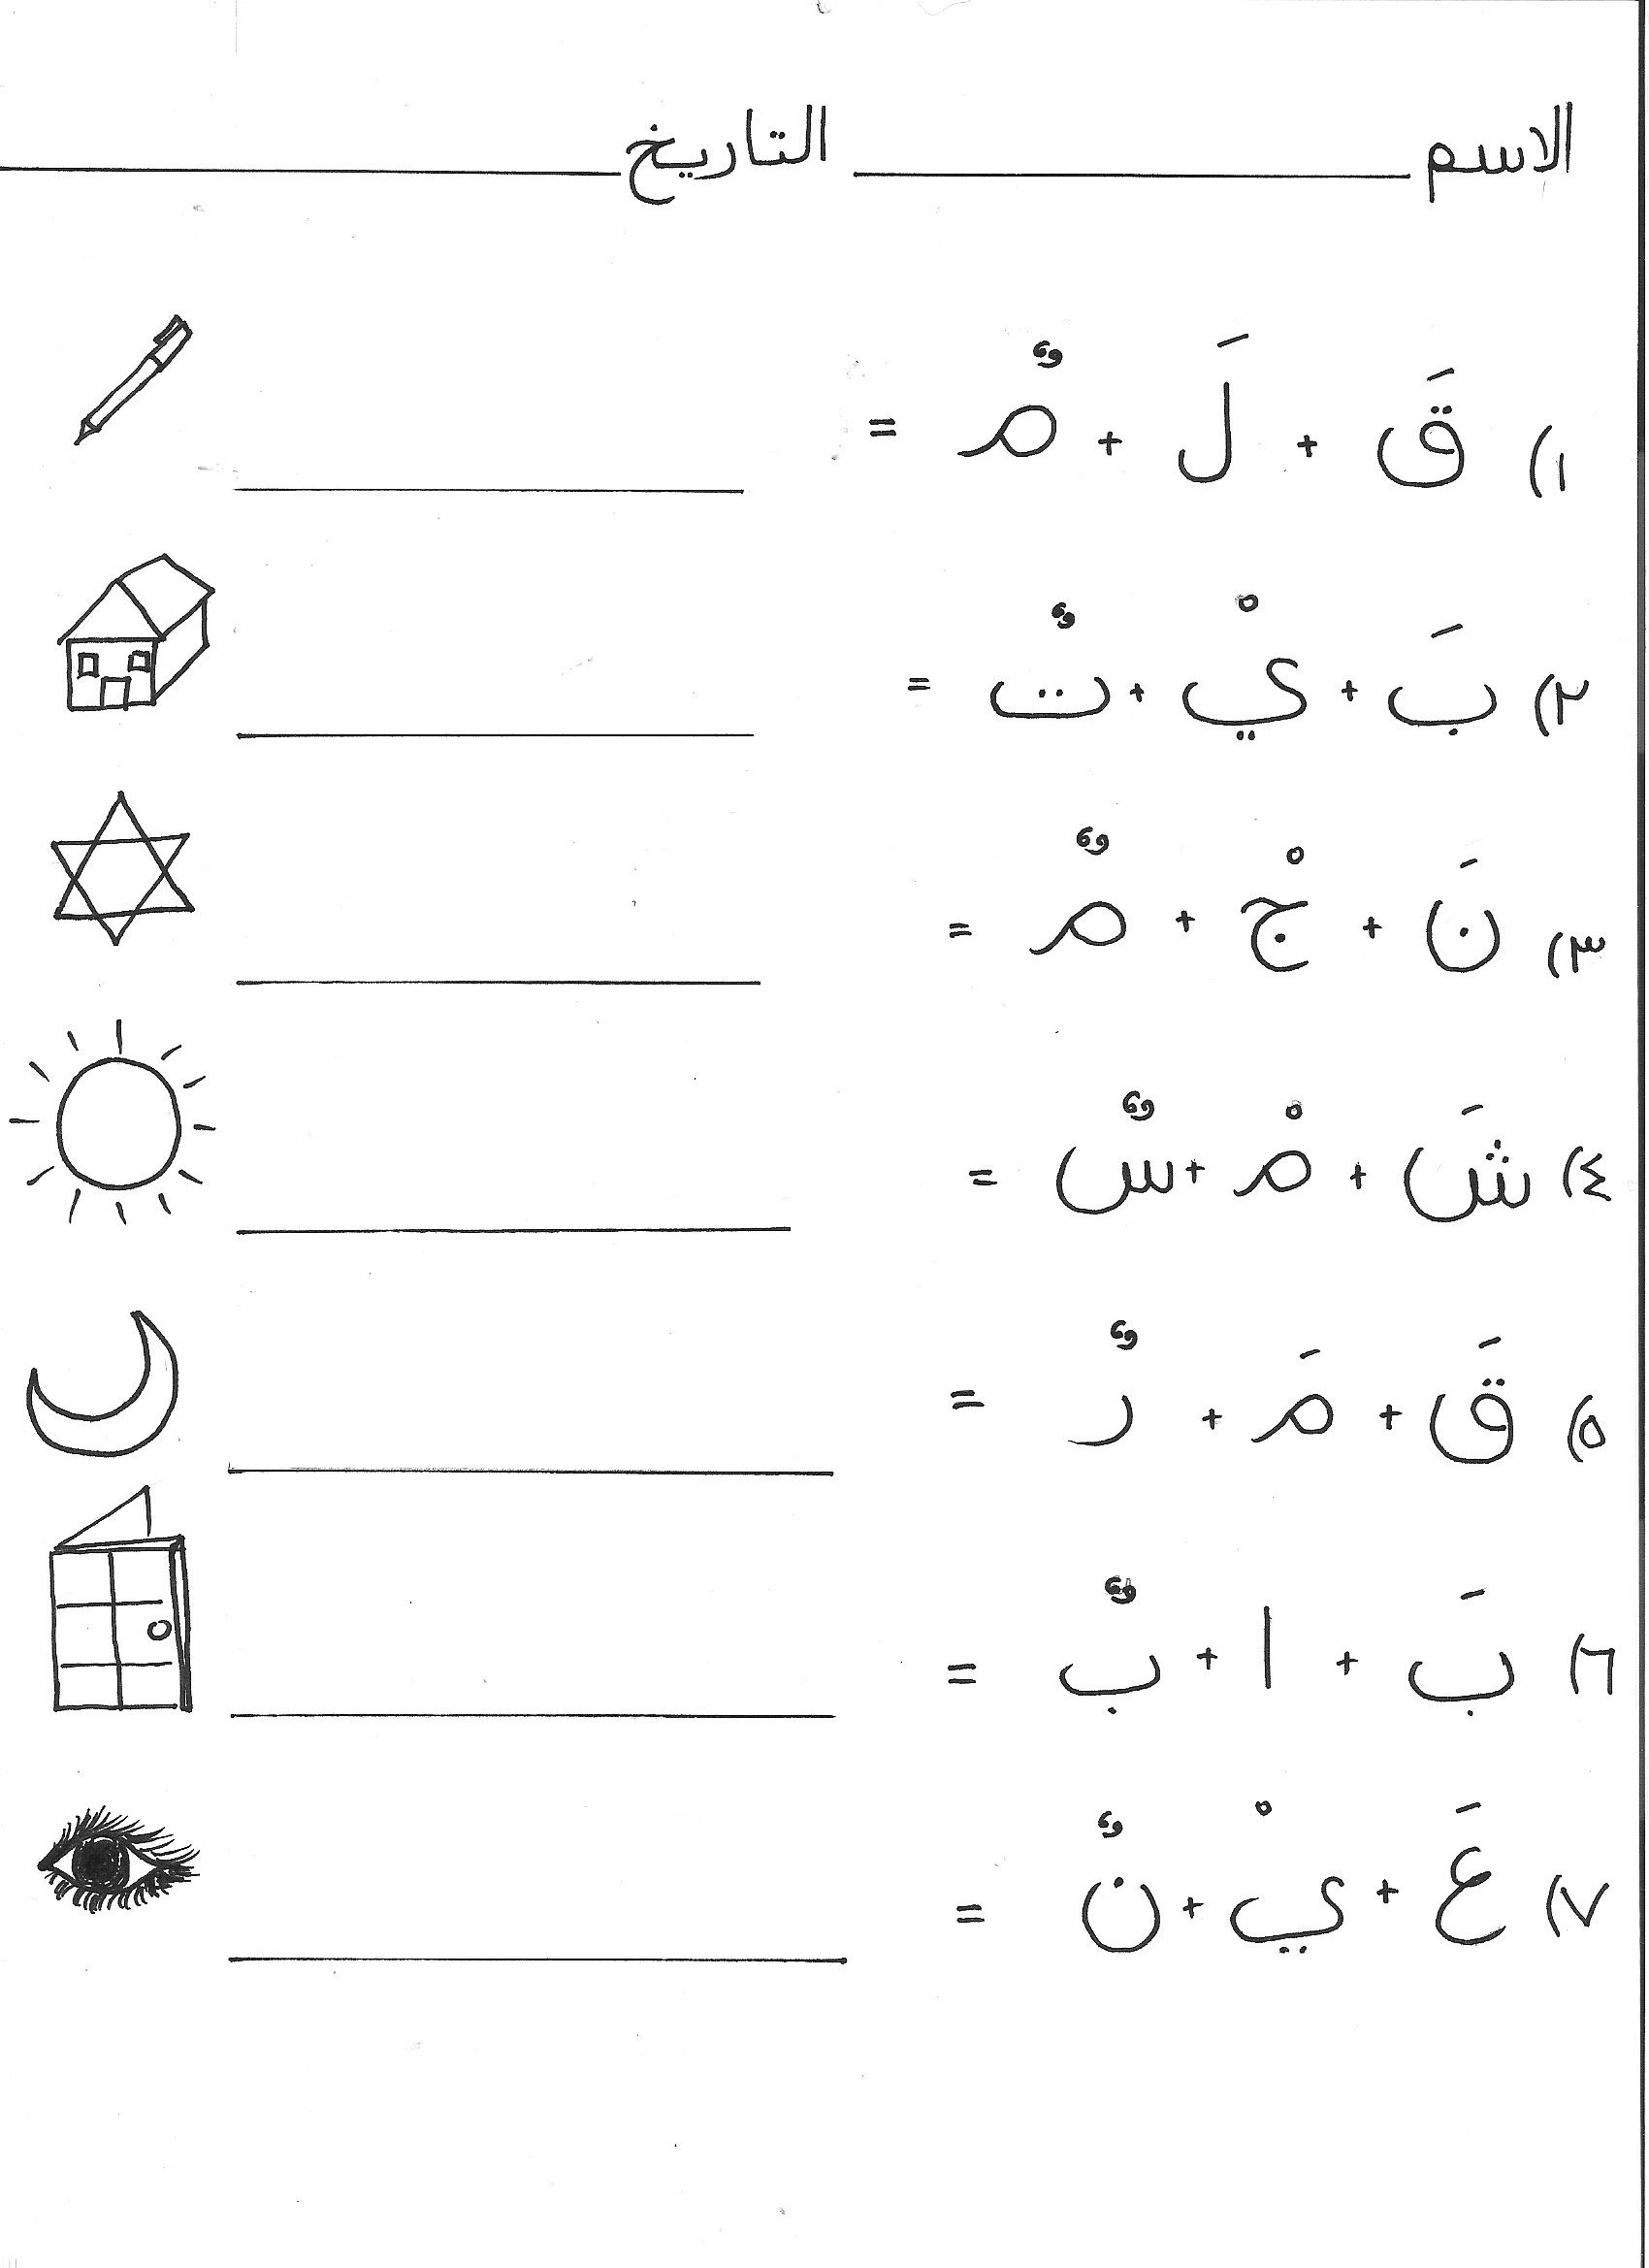 Arabic Alphabet Worksheet Most Of The Letters Were Done